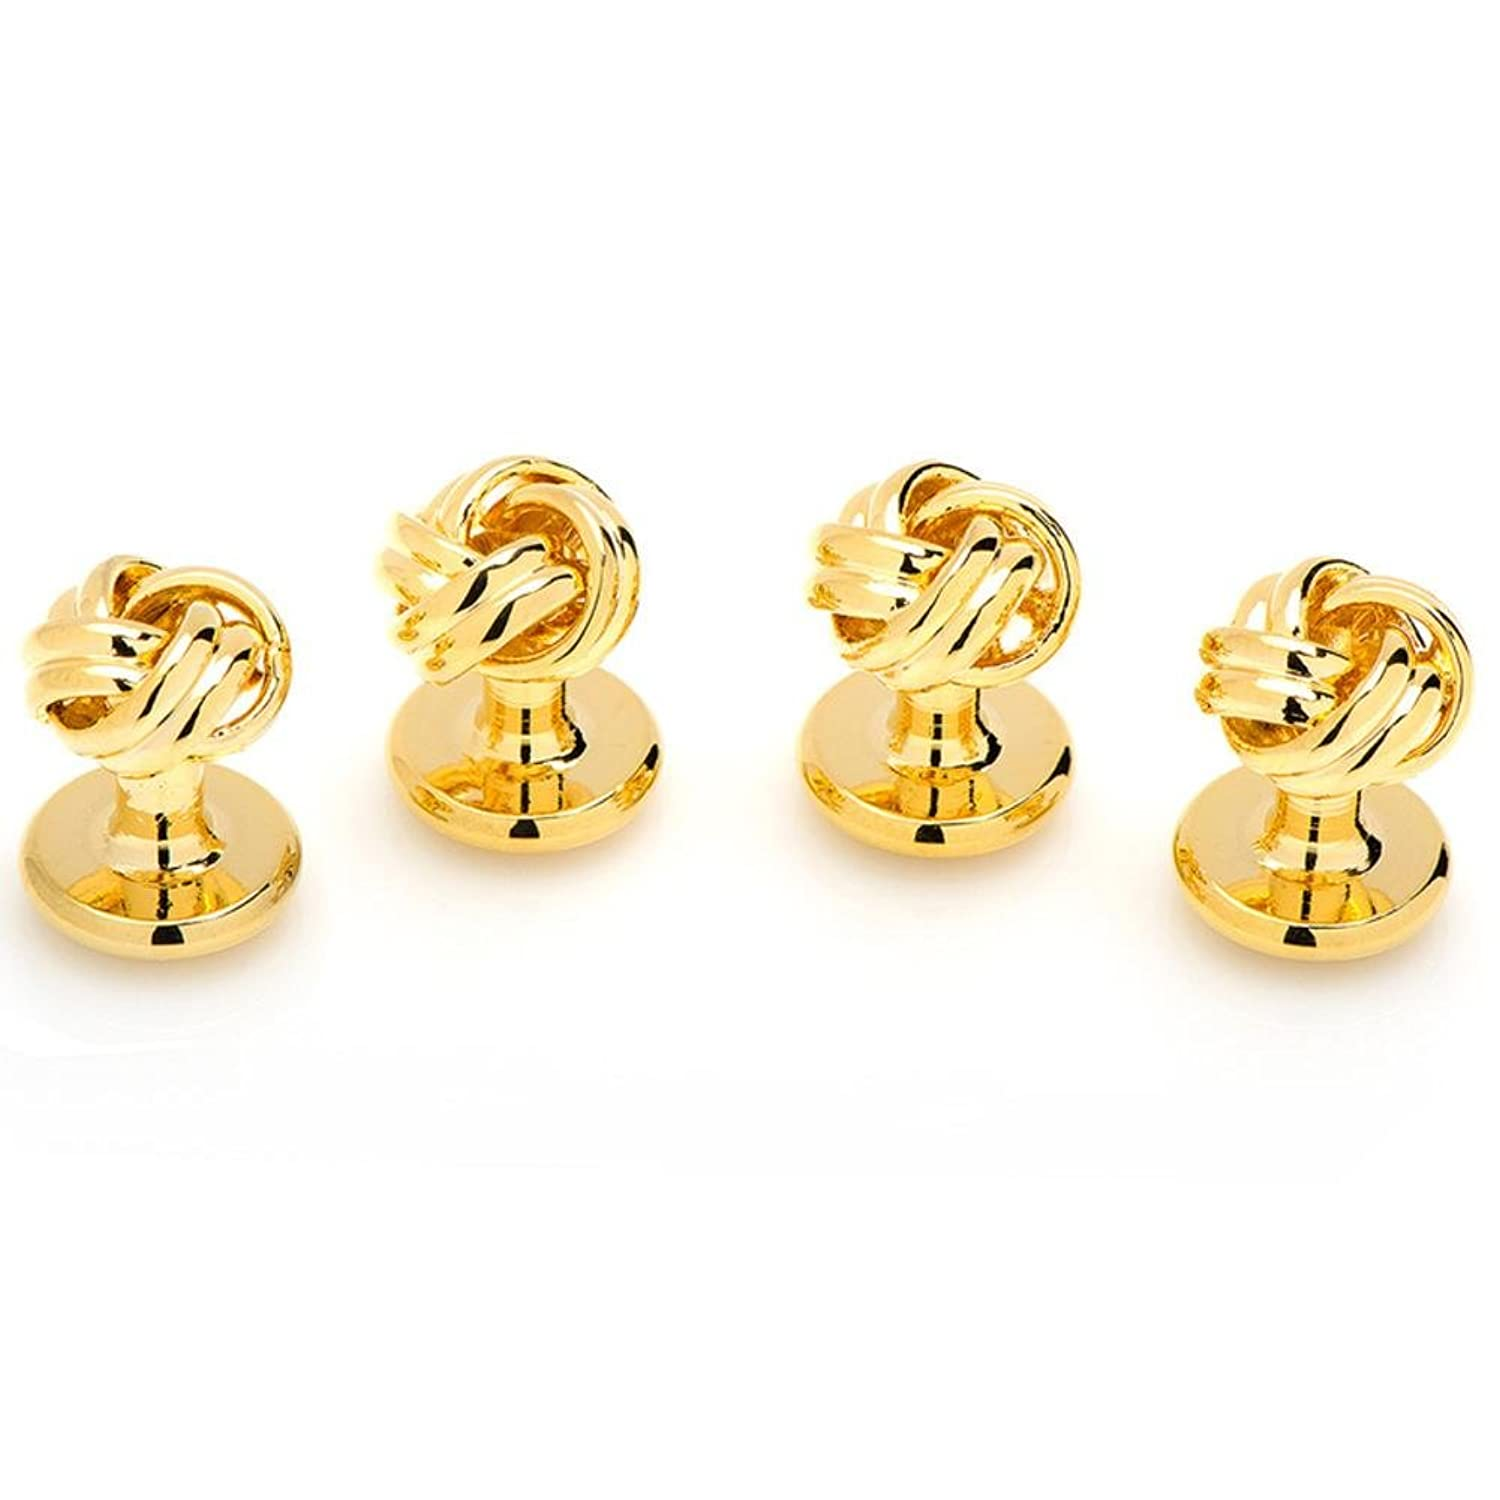 Ox & Bull Trading Co. Men's Knot Studs GS